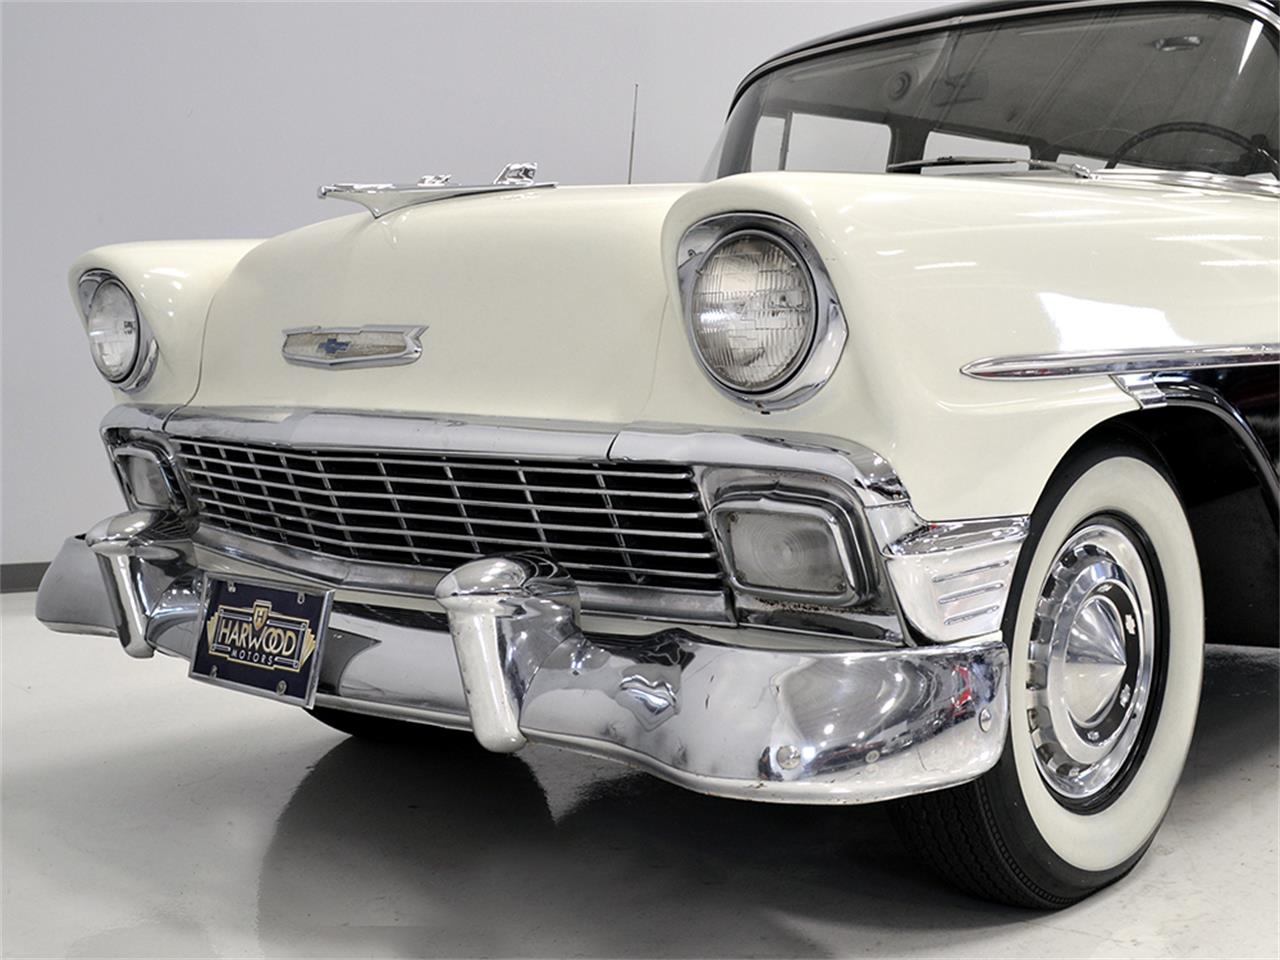 Large Picture of Classic '56 Chevrolet 210 Offered by Harwood Motors, LTD. - K2KS